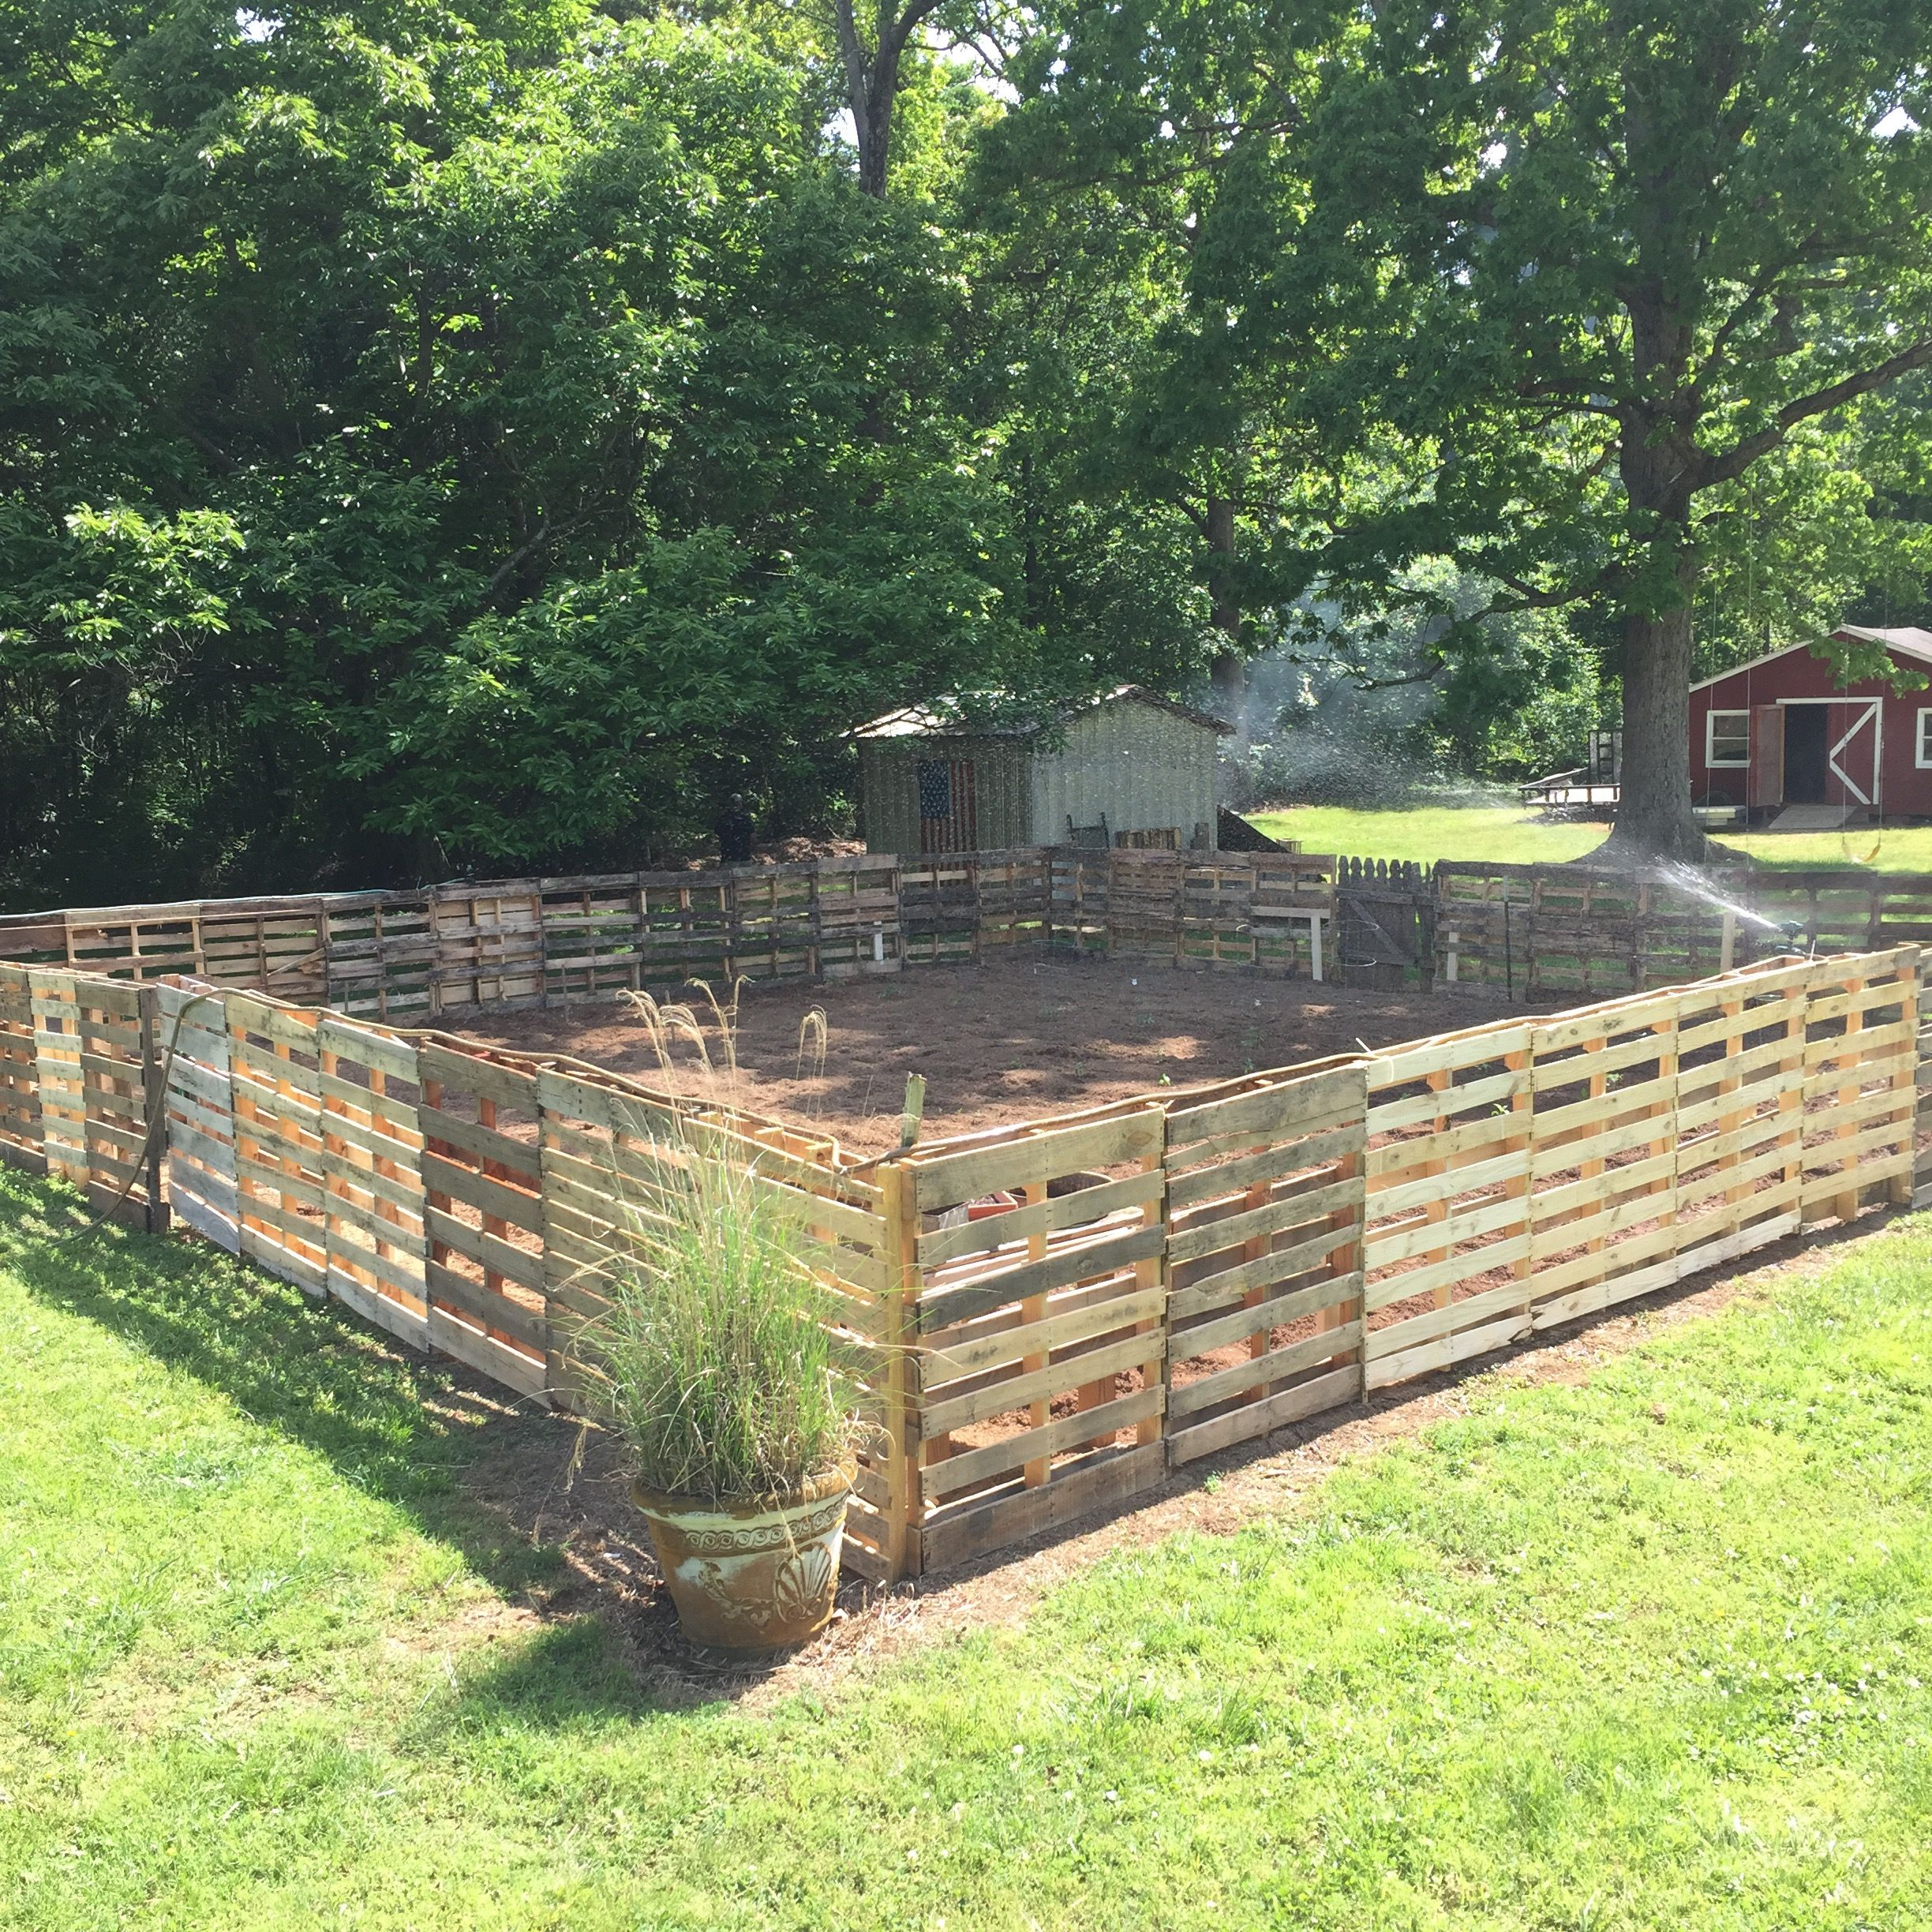 I want my pallet fence around kids play area to look like this